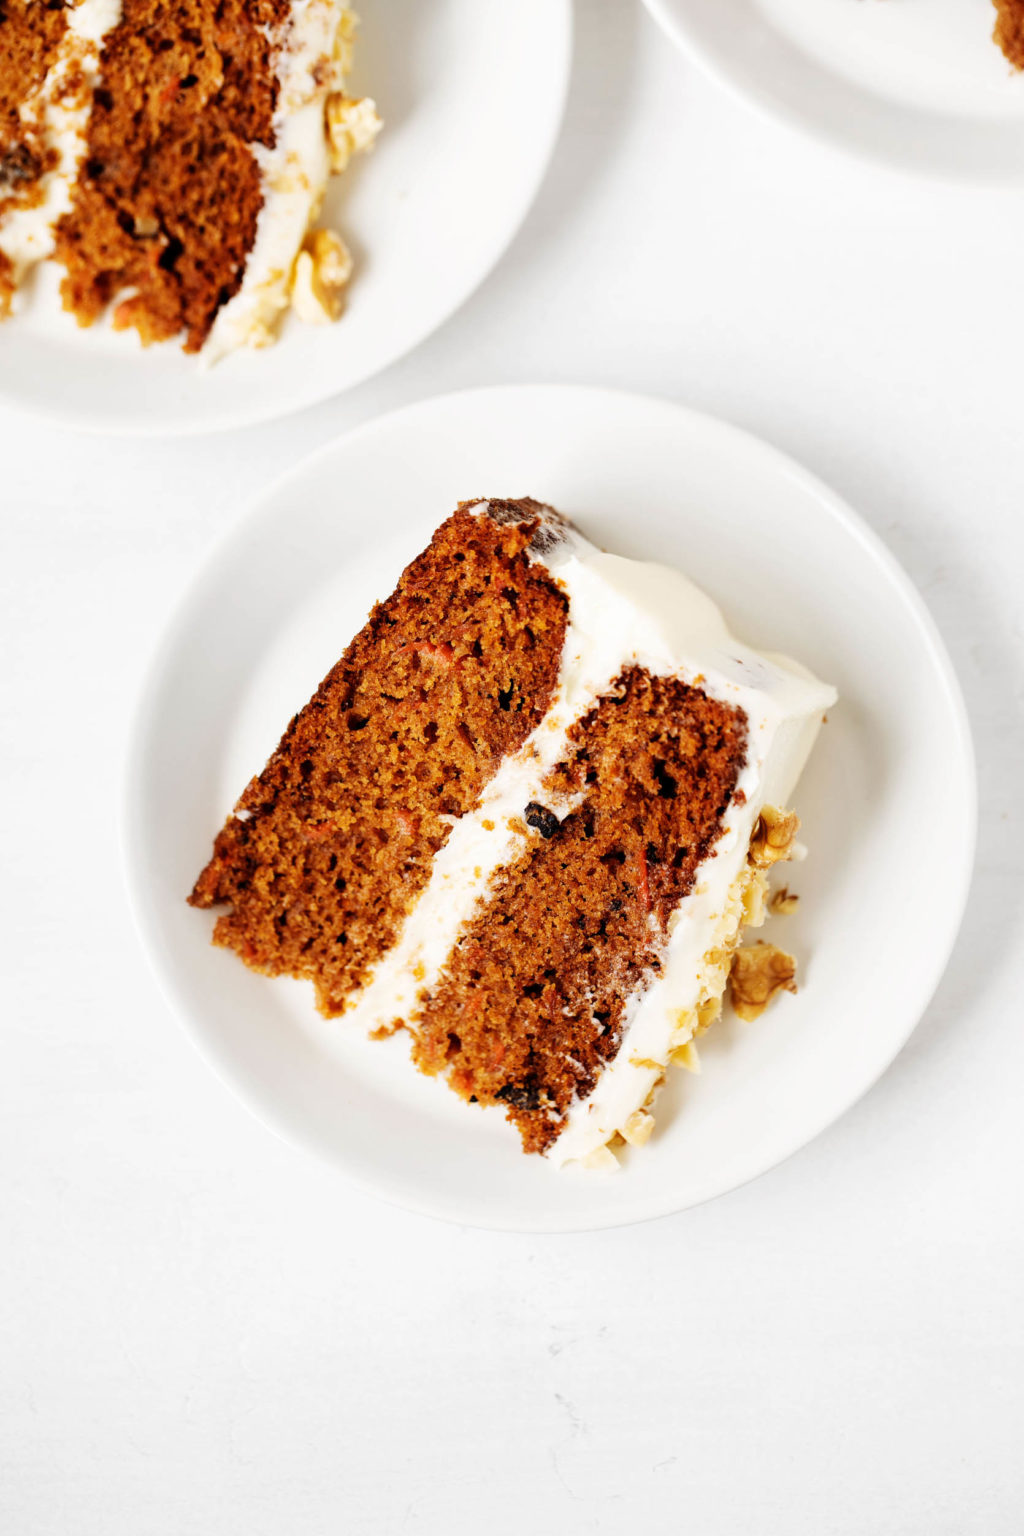 A neat slice of vegan carrot cake has been placed on a small dessert plate. Another slice peeks out in the background.